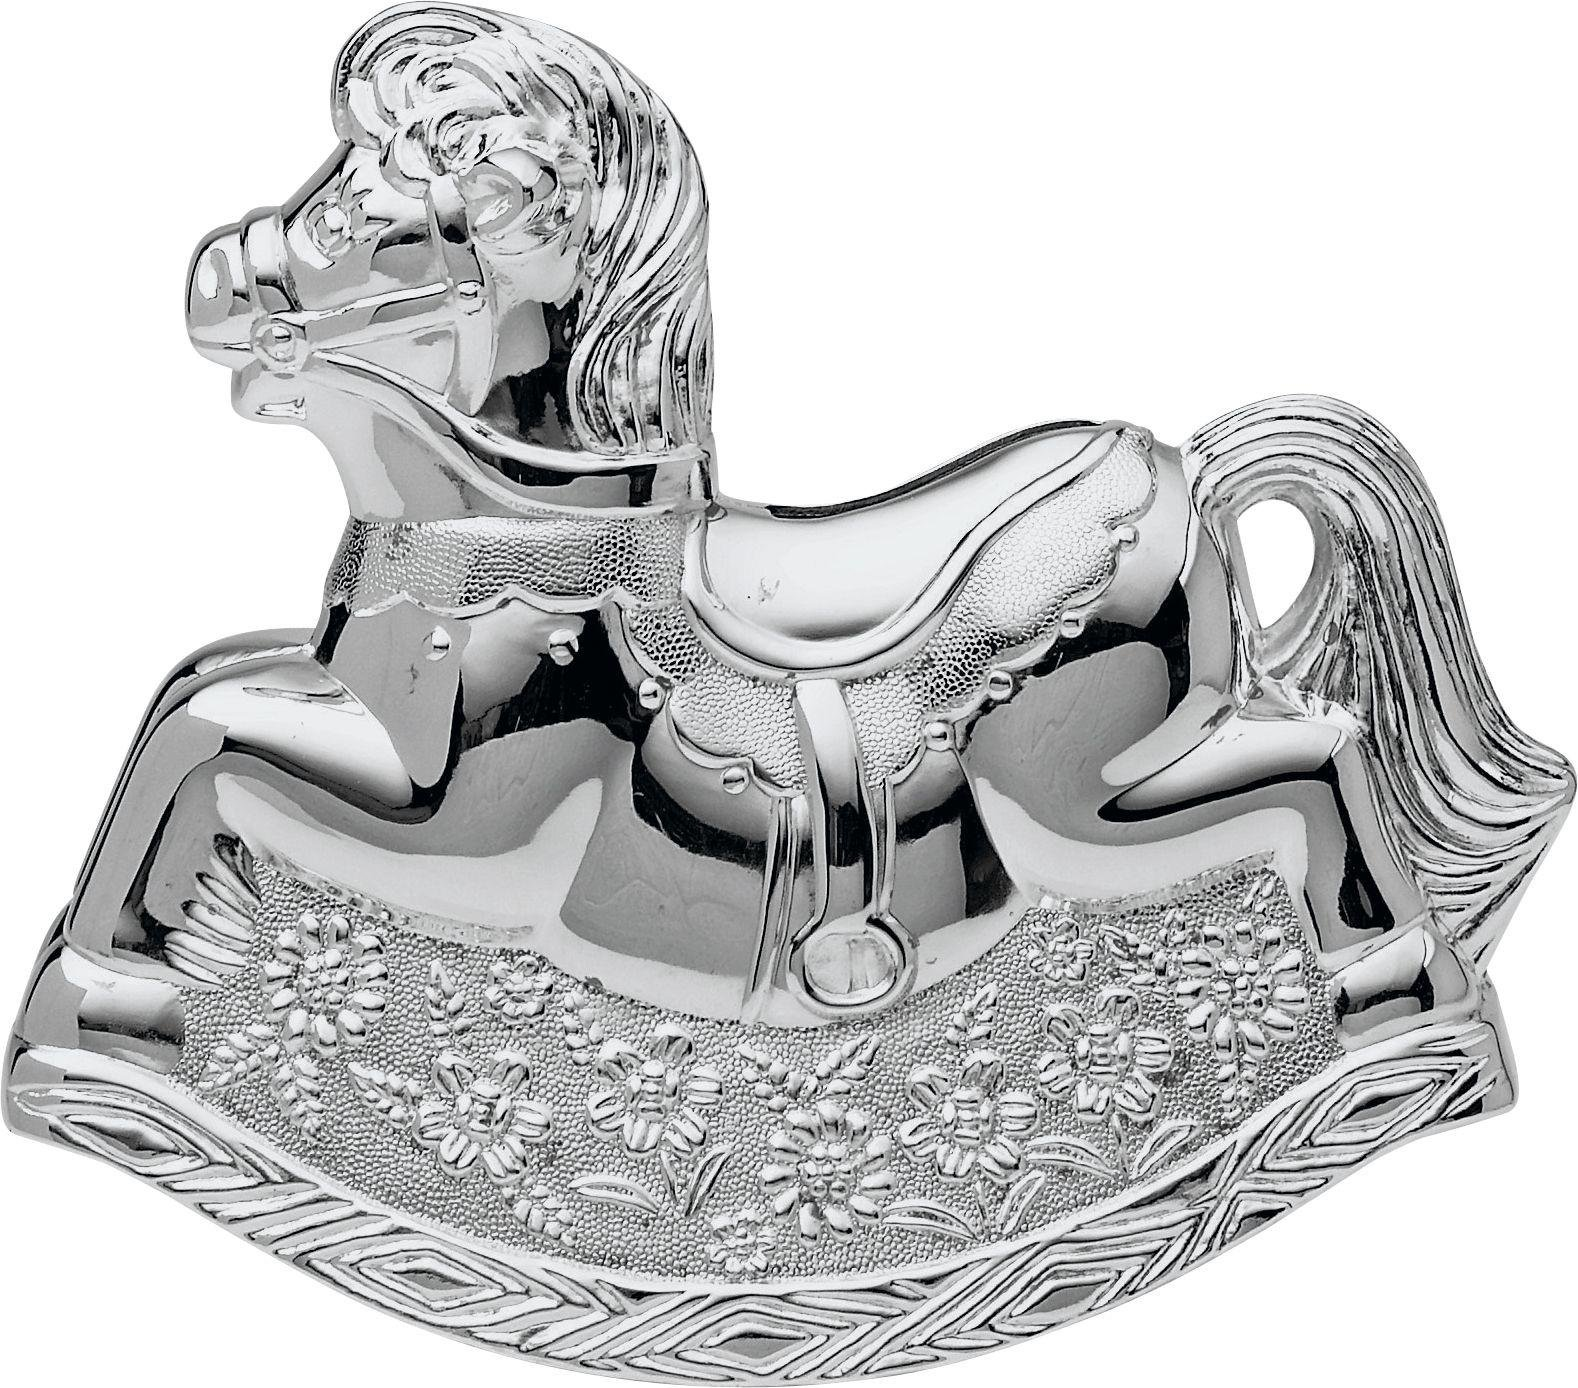 Little Ones - Silver Plated Rocking Horse Money Box